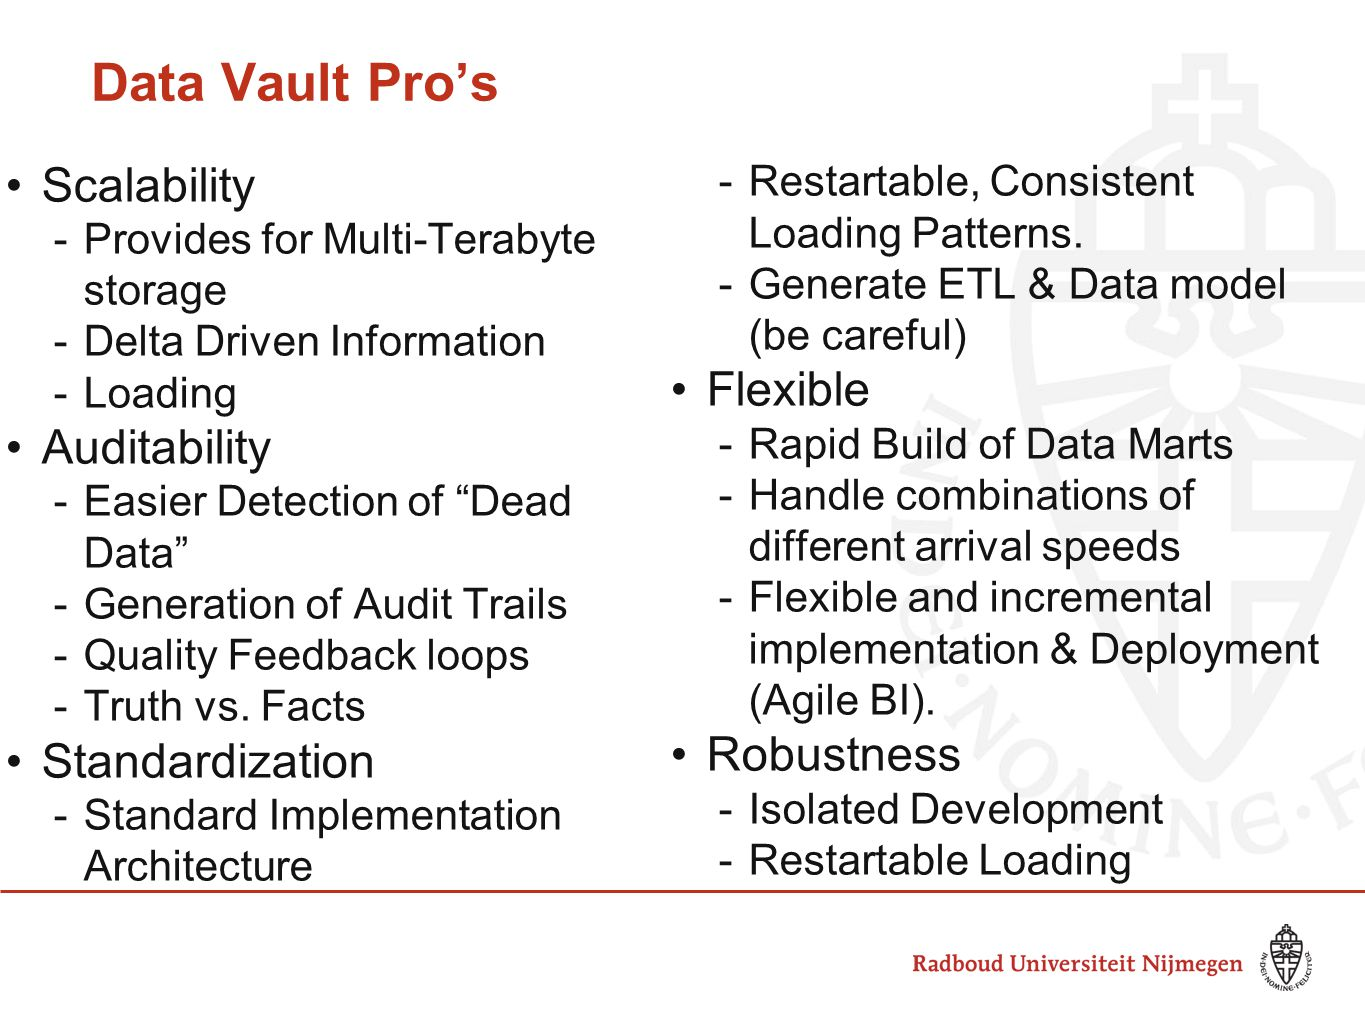 Data Vault Pro's Scalability Flexible Auditability Robustness